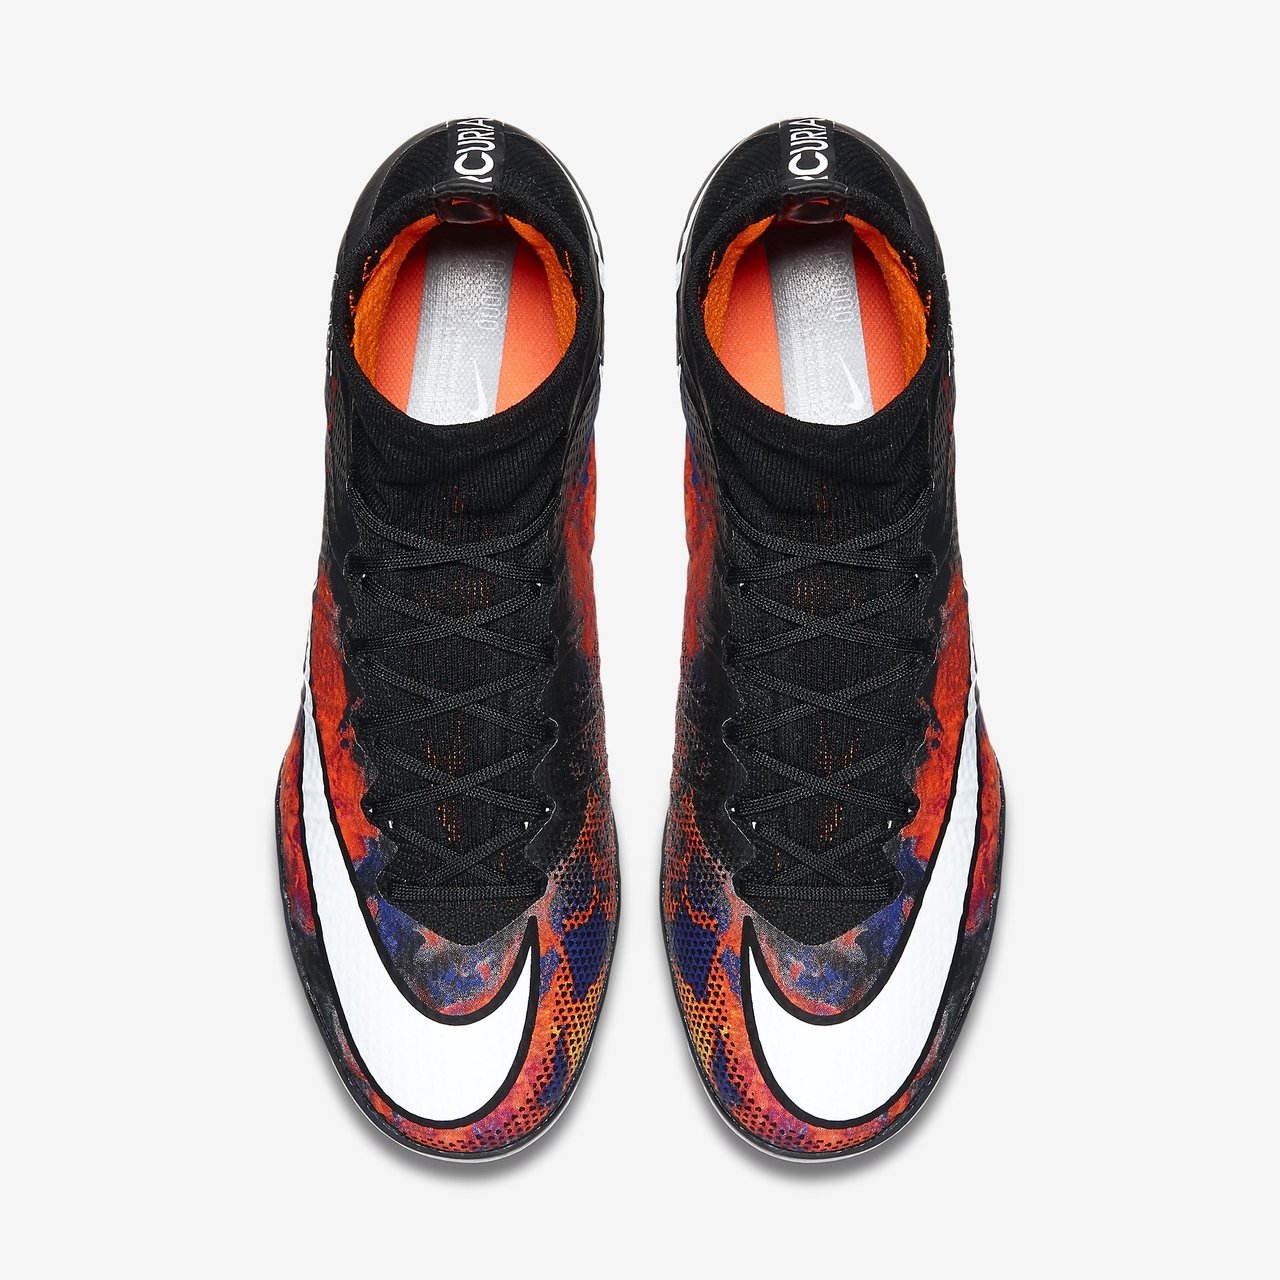 b88ce7c36 ... get nike mercurialx proximo cr7 lava ic indoor high soccer shoes 795f4  9e178